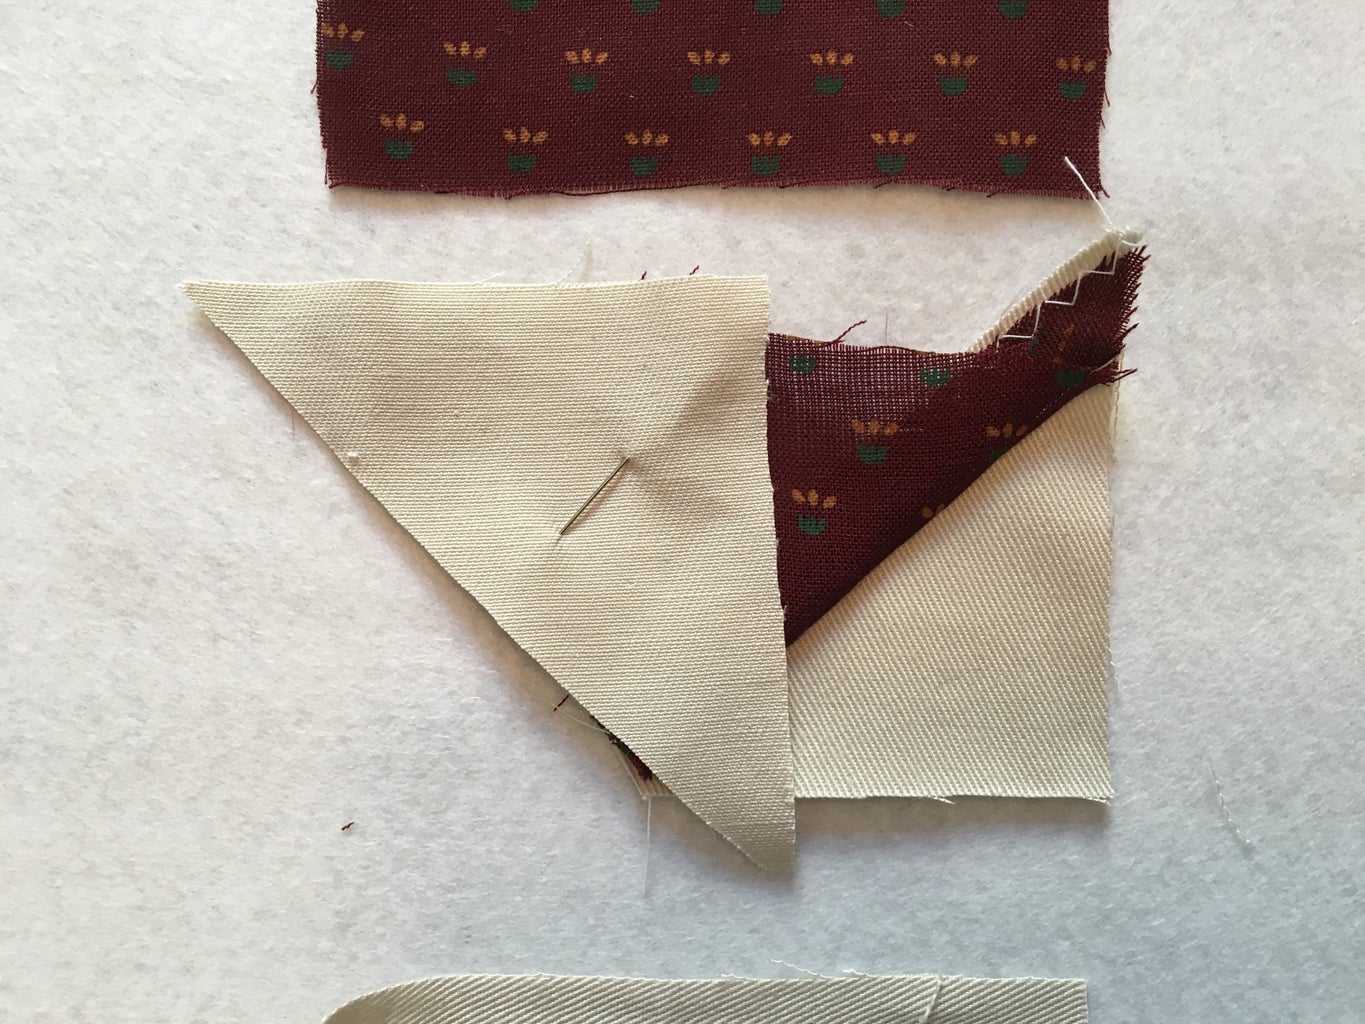 Stitch Middle Column Patches